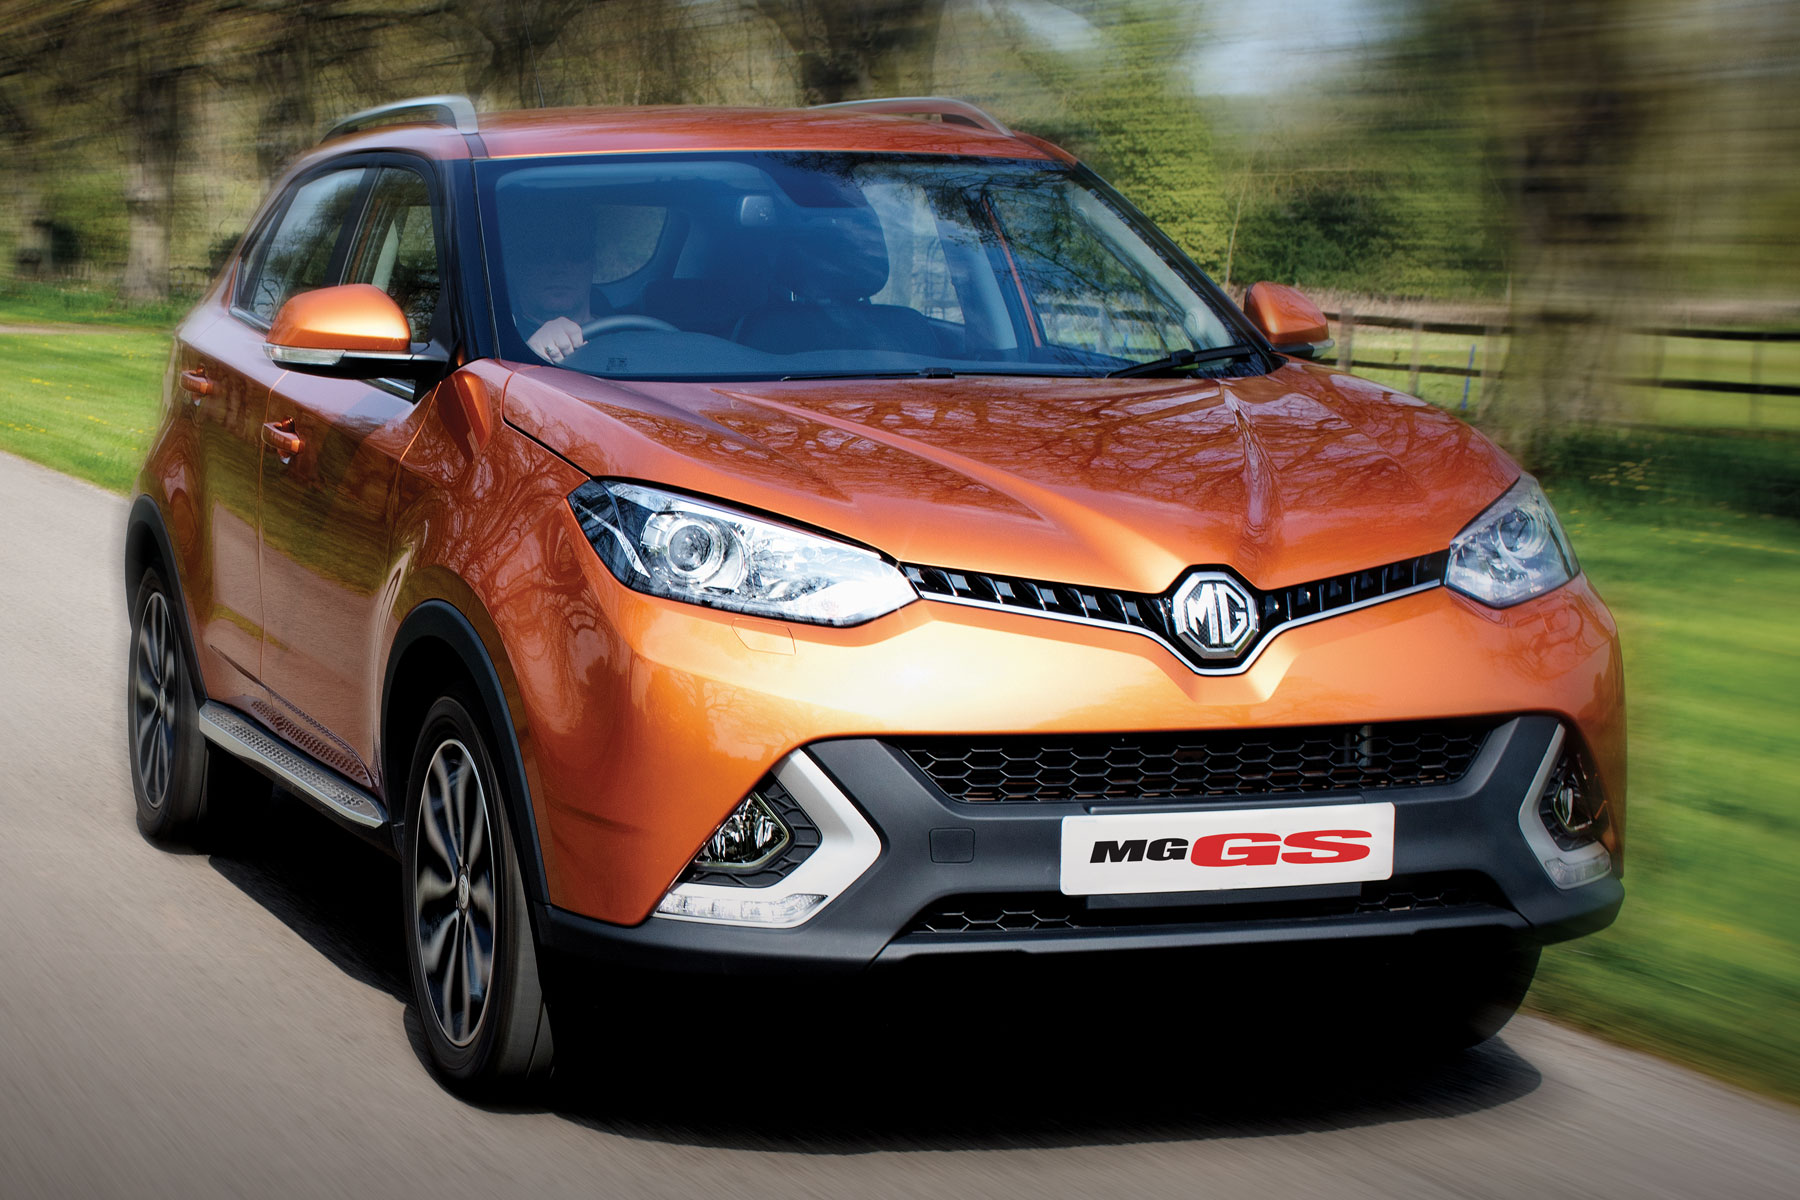 2016 MG GS review: can an MG be an SUV? | Motoring Research